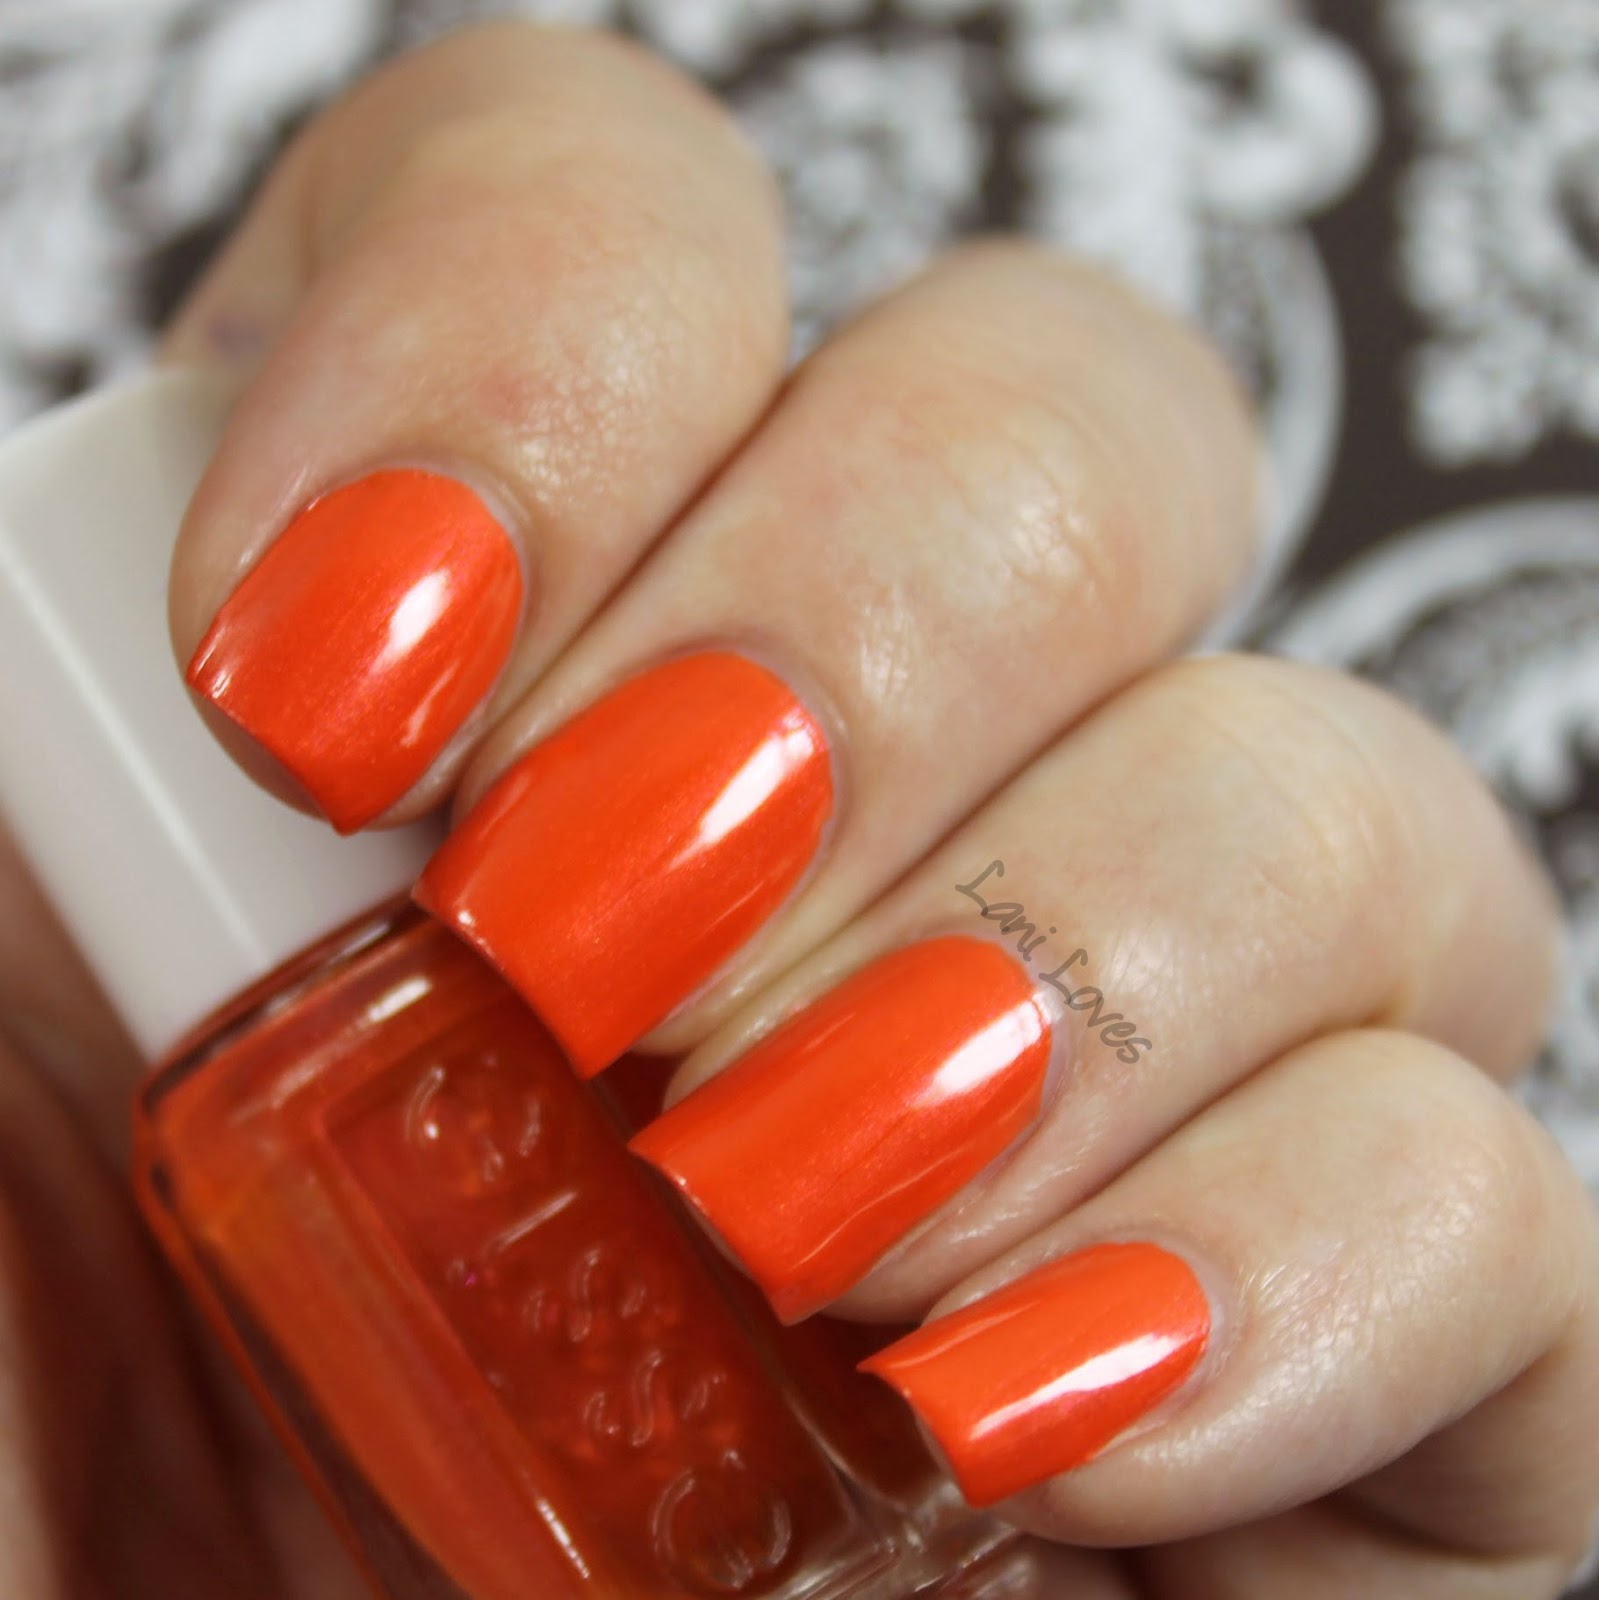 Essie Braziliant Swatch